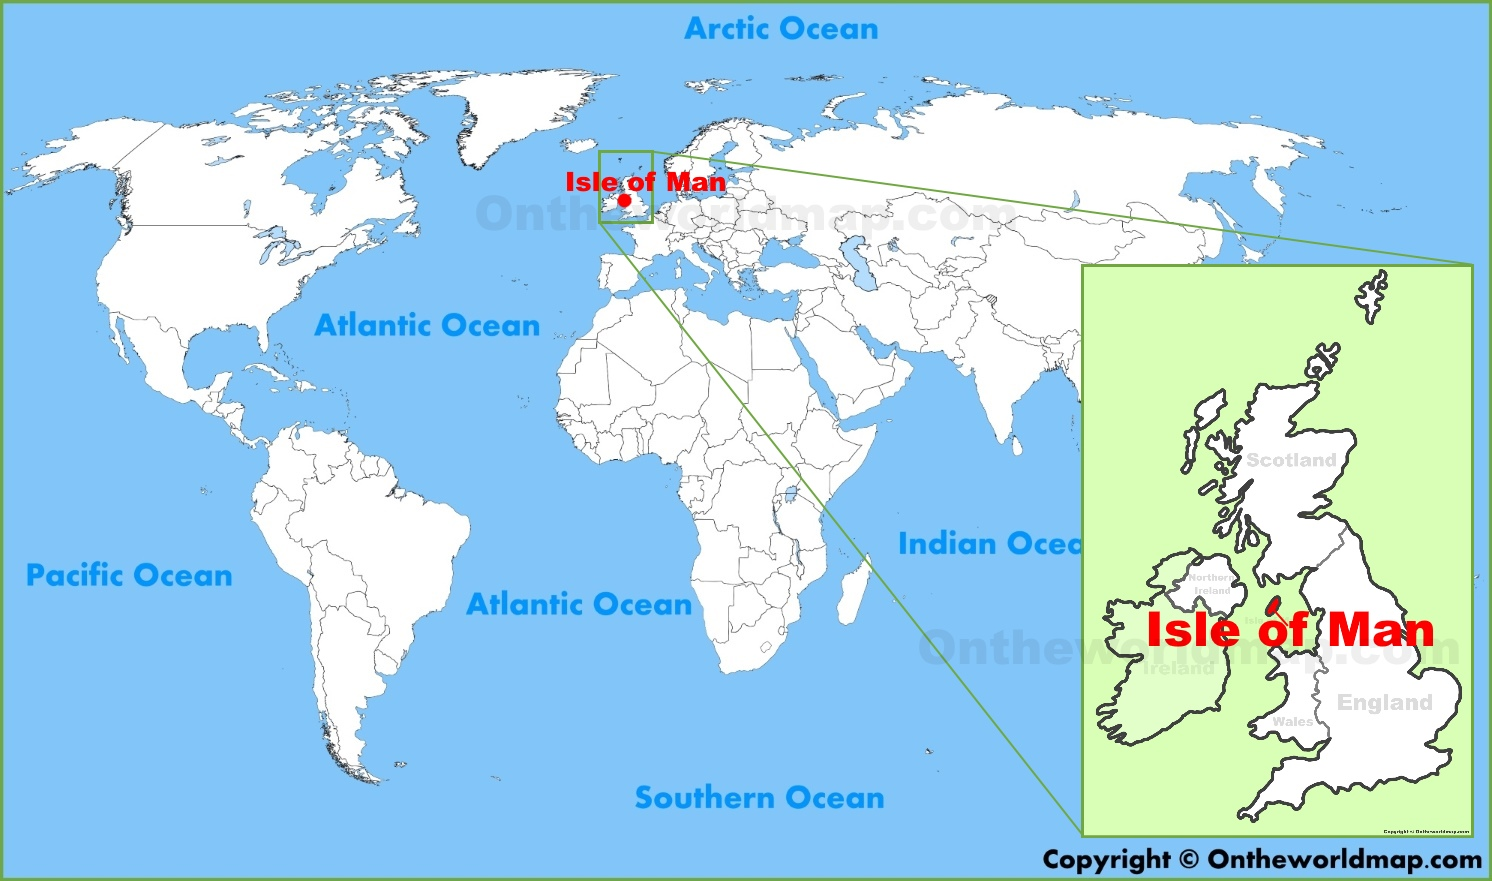 Isle of Man location on the World Map